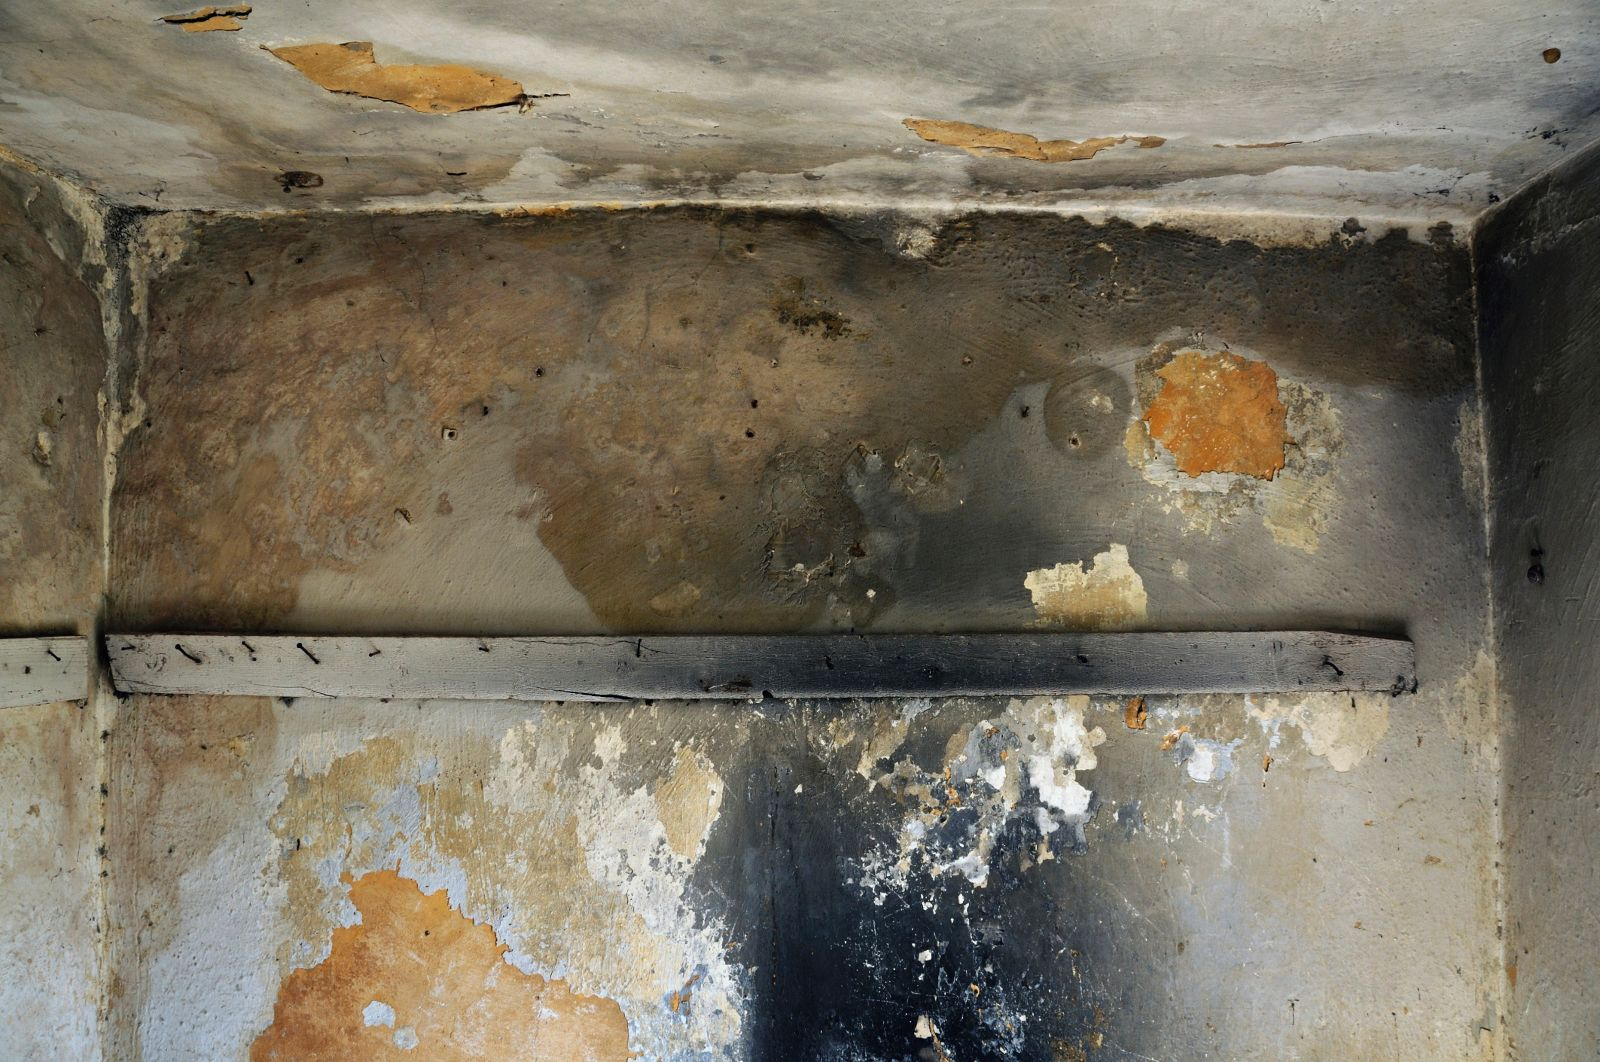 montana 39 s top mold removal company warns about 3 causes of black mold big mountain insulators. Black Bedroom Furniture Sets. Home Design Ideas